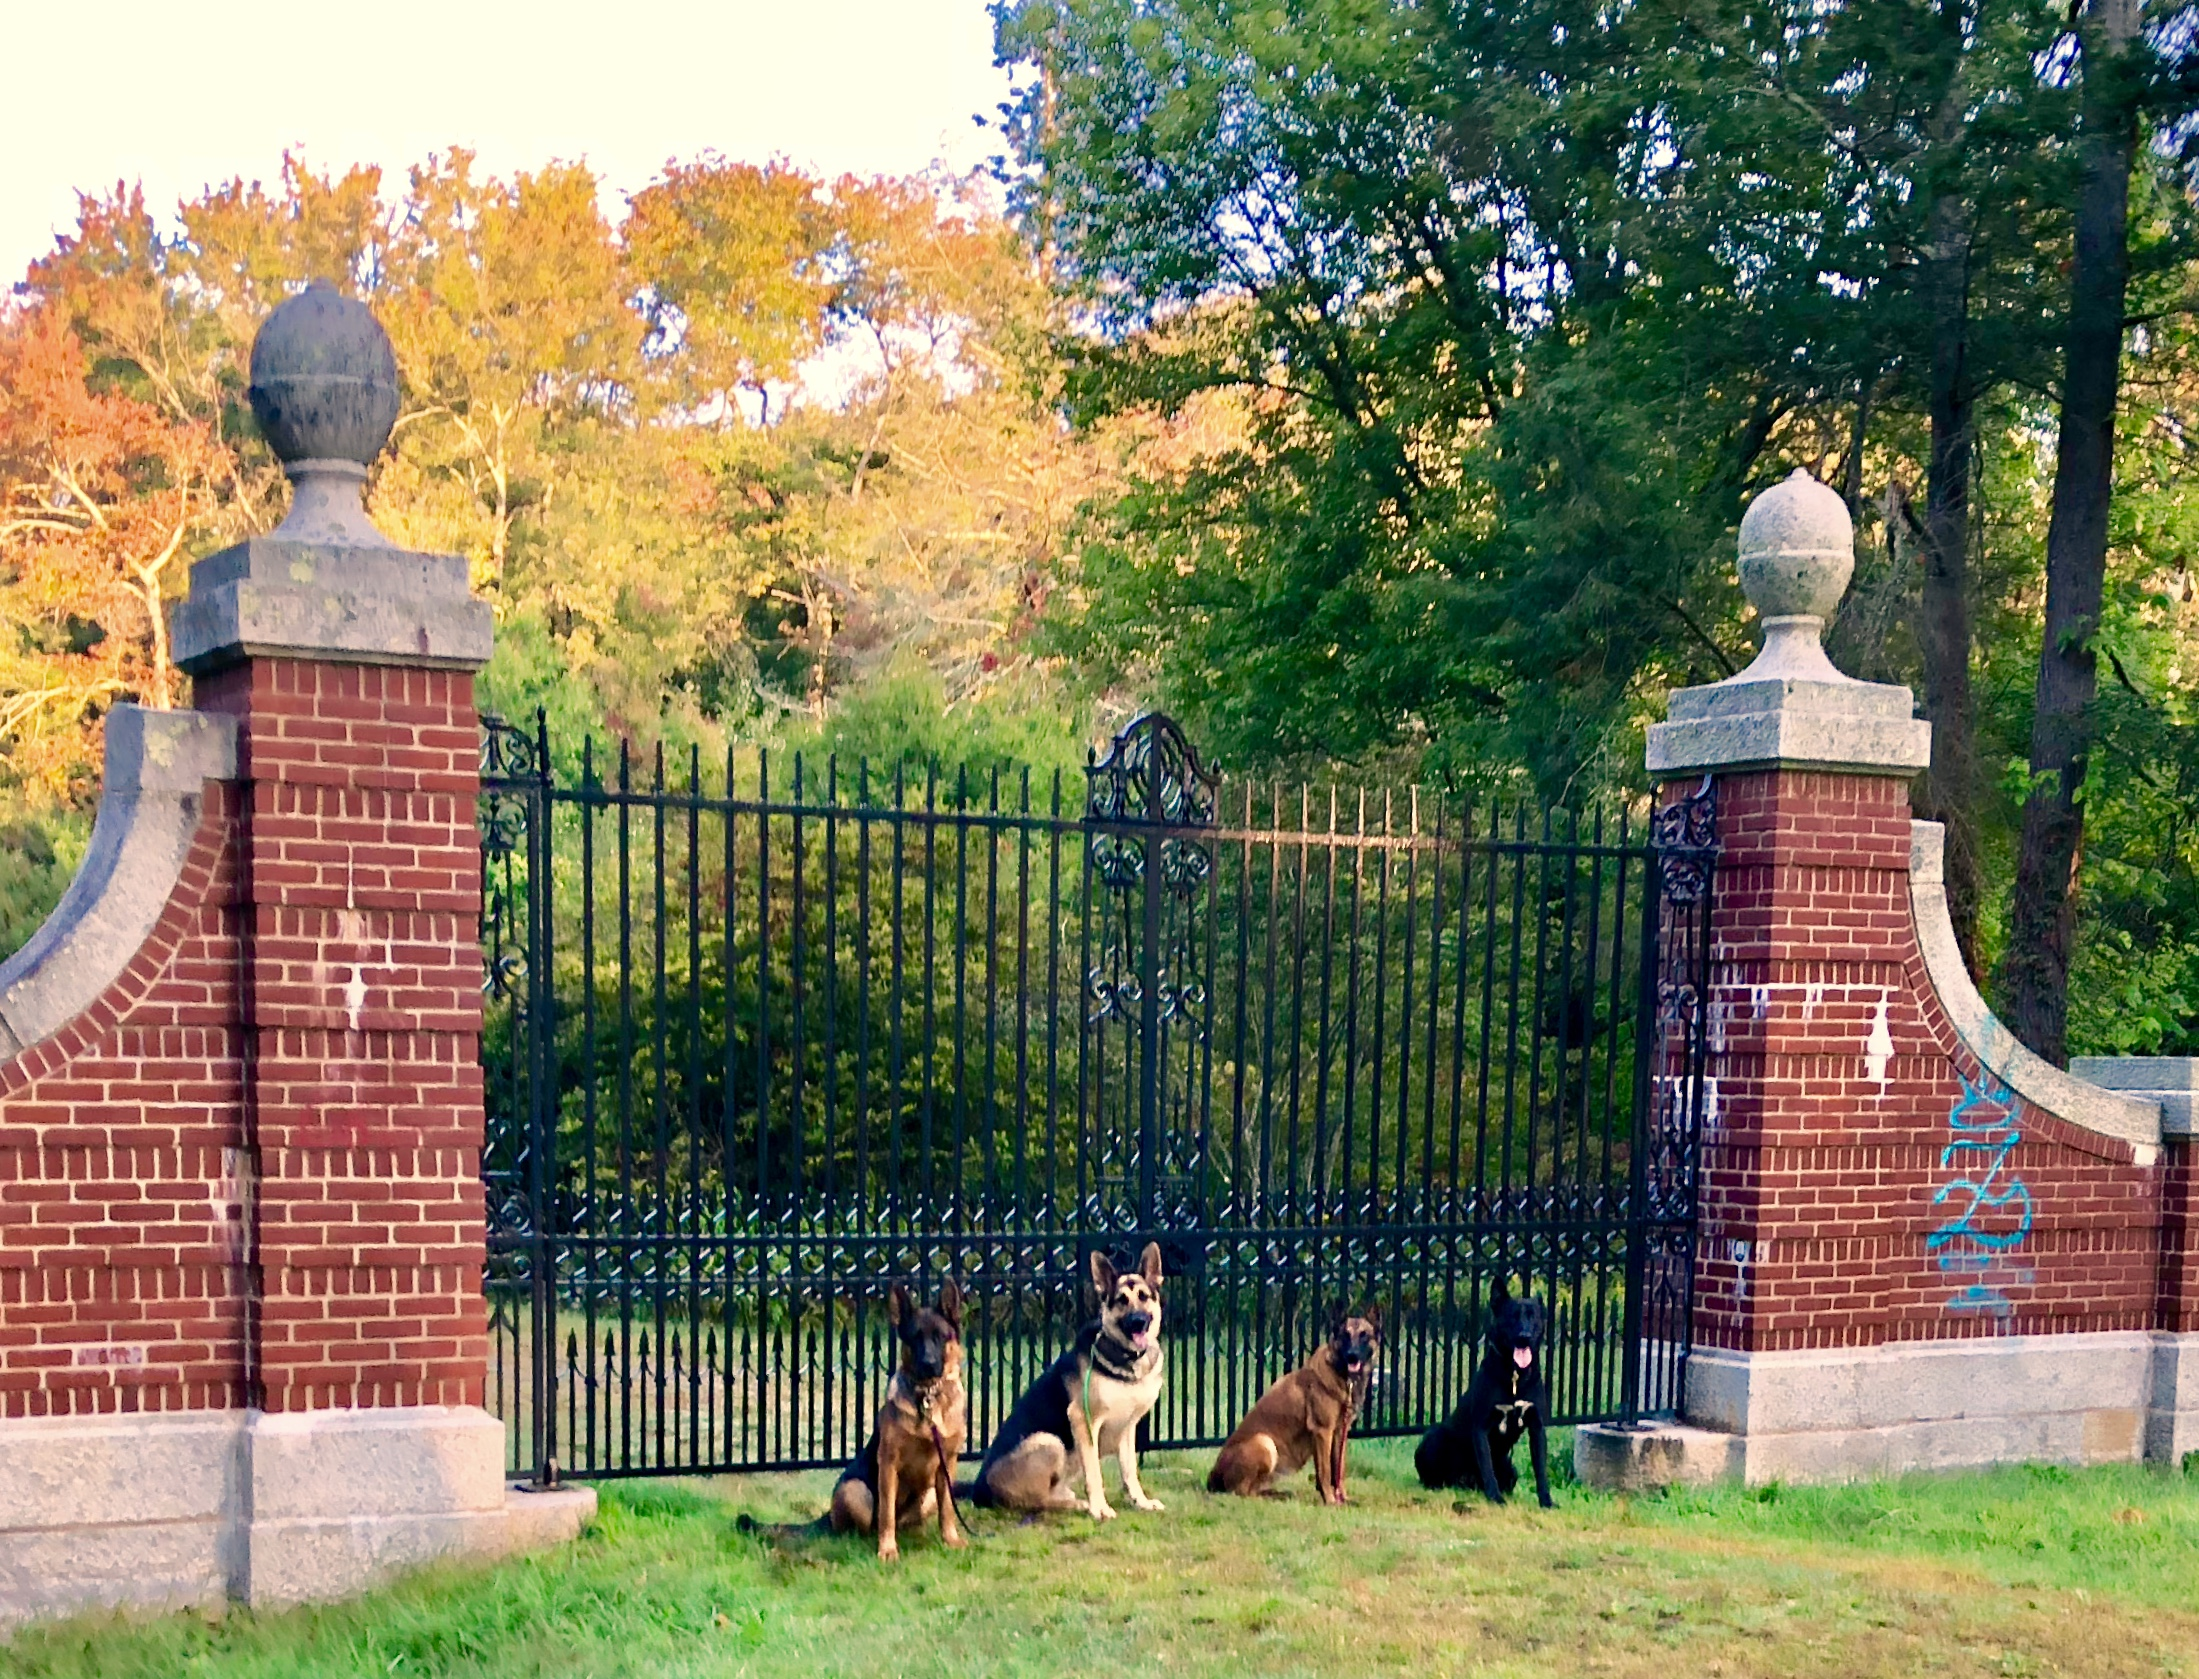 Dogs In Front Of A Gate